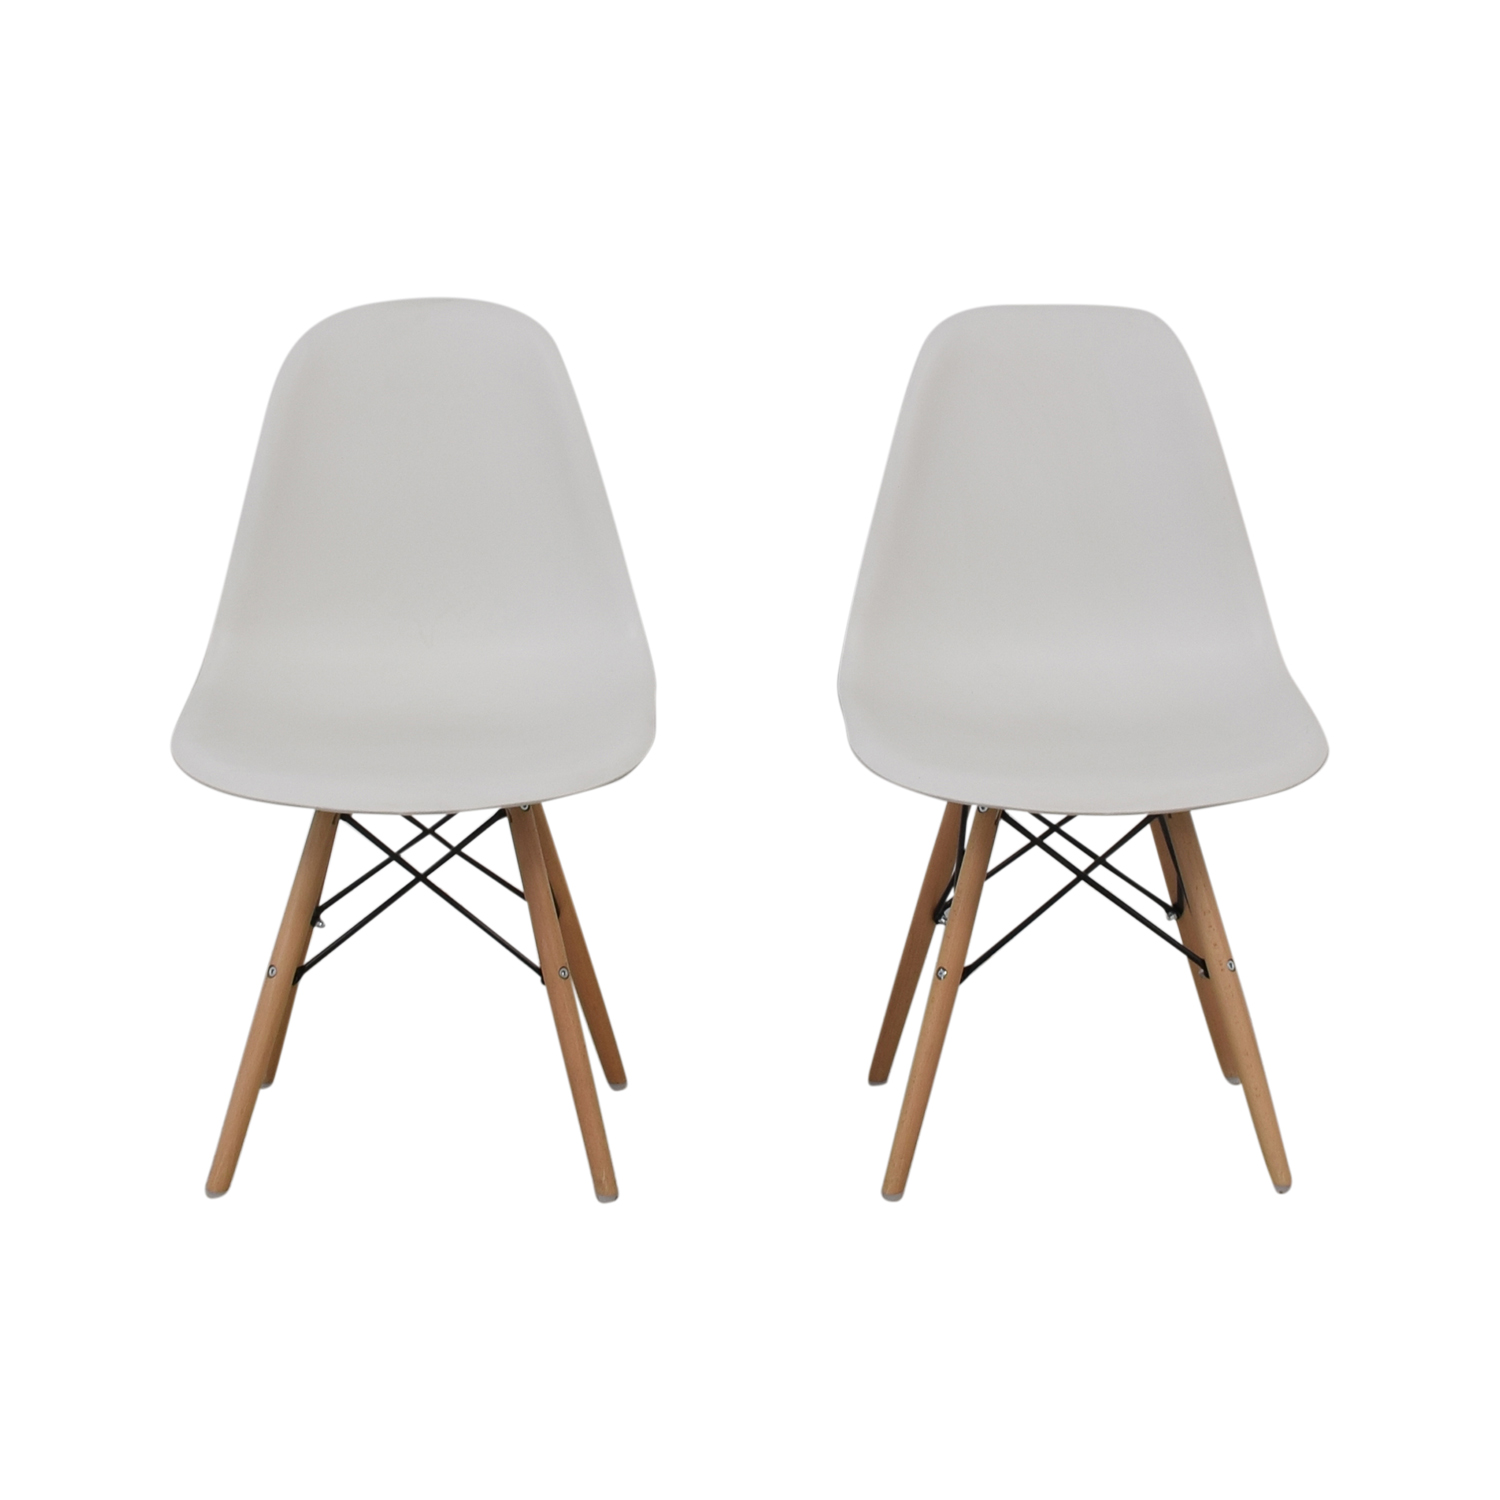 Eames Chair Wayfair | Emodern Decor Mid Century Modern Scandinavian ...